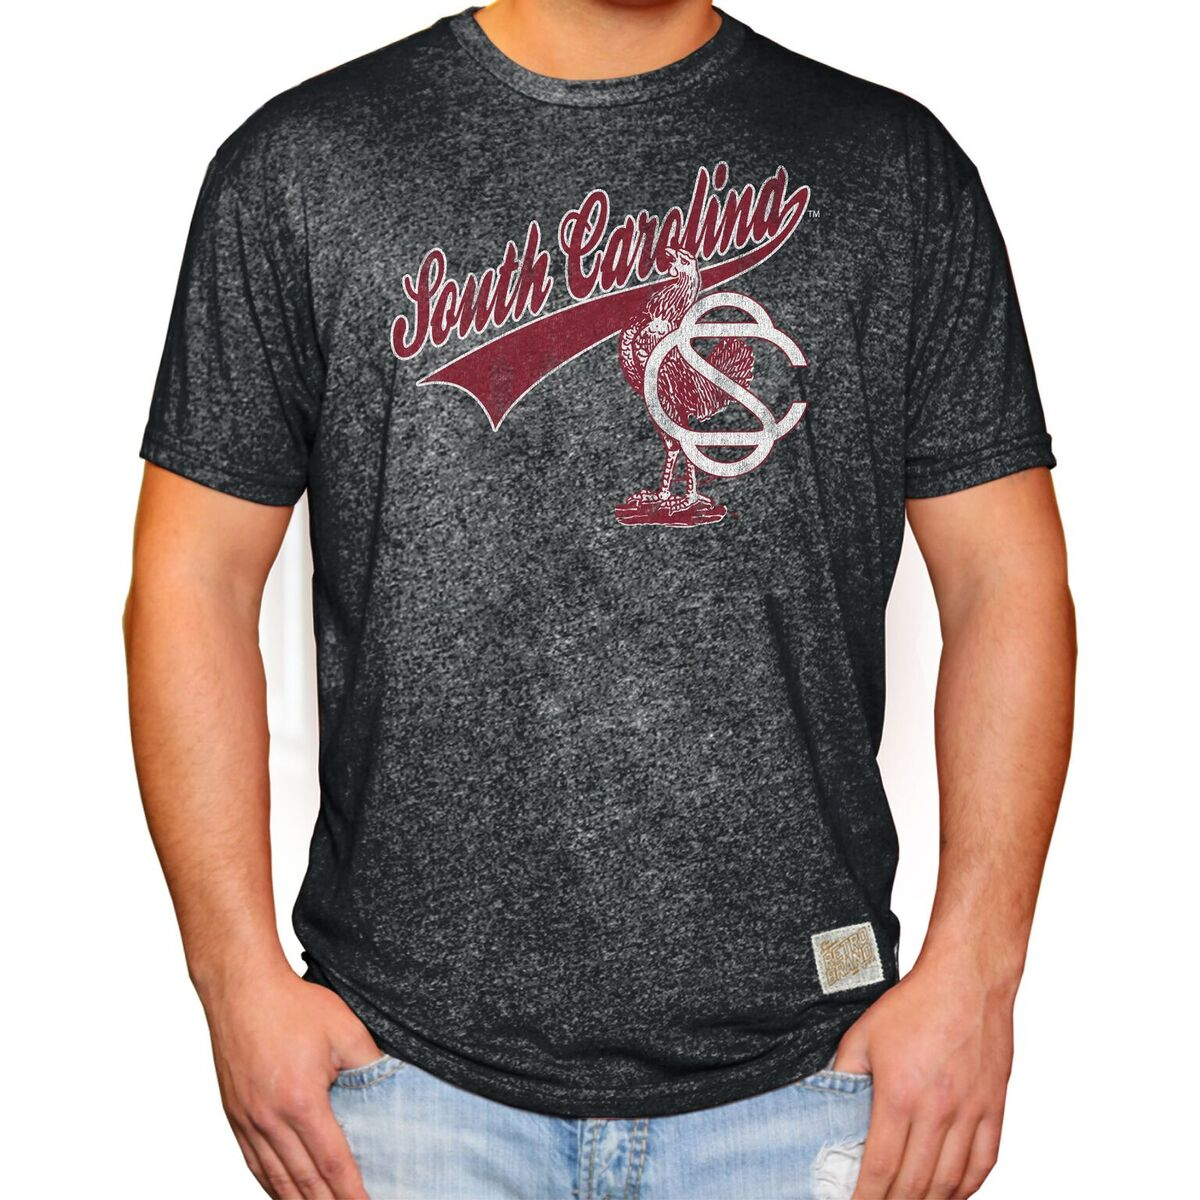 South Carolina Gamecocks Men's Short Sleeve Mock Twist Tee